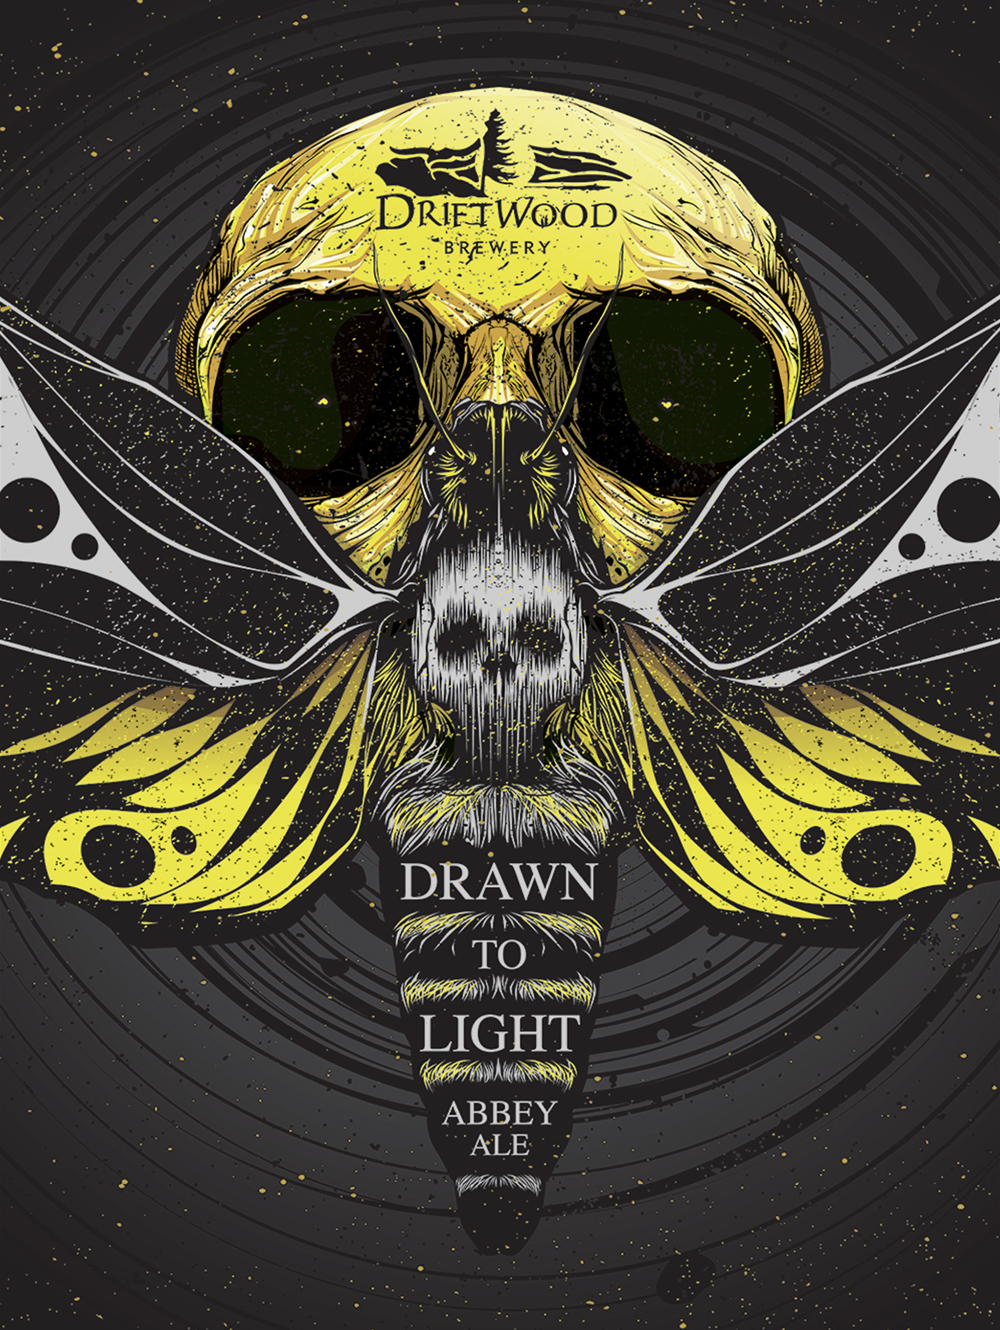 Packaging Design for Driftwood Brewery's Drawn to Light Abbey Ale